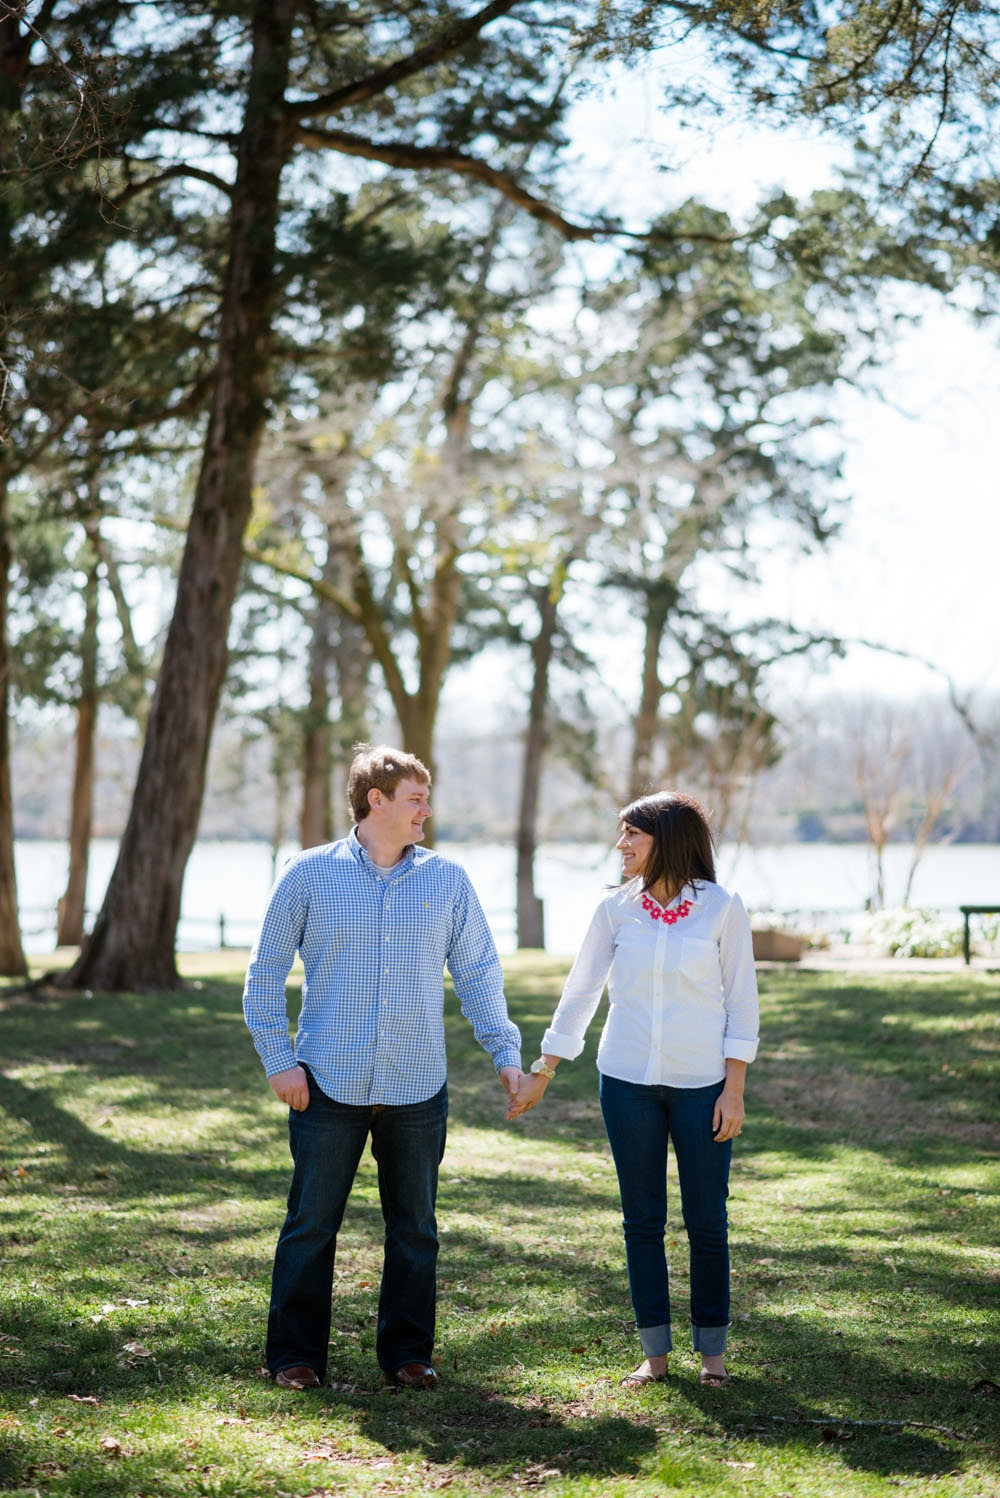 Arkansas Engagement: Layla Qedan & Taylor Simmons of Bryant